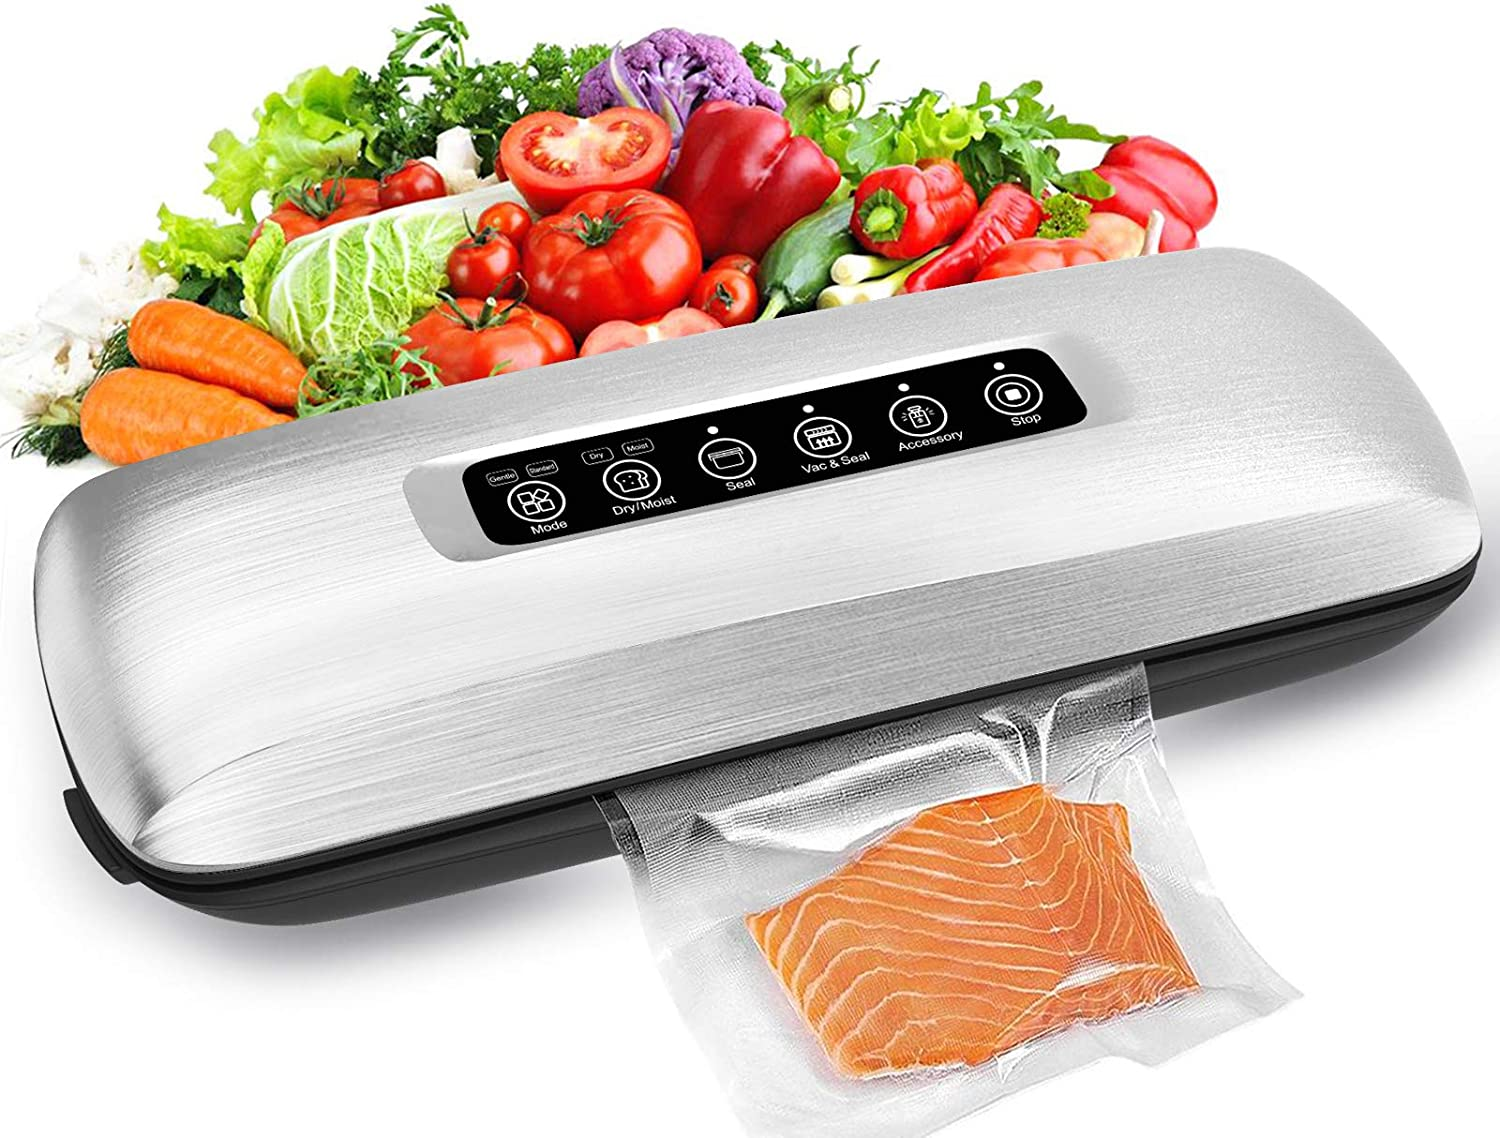 Cocomox Vacuum Sealer Machine, Automatic Air Vacuum Sealer Built-in Cutter for Food Saver Storage, Food Sealer with Starter Kit Dry Moist Food Modes Adjustable Led Indicator Lights Compact Design